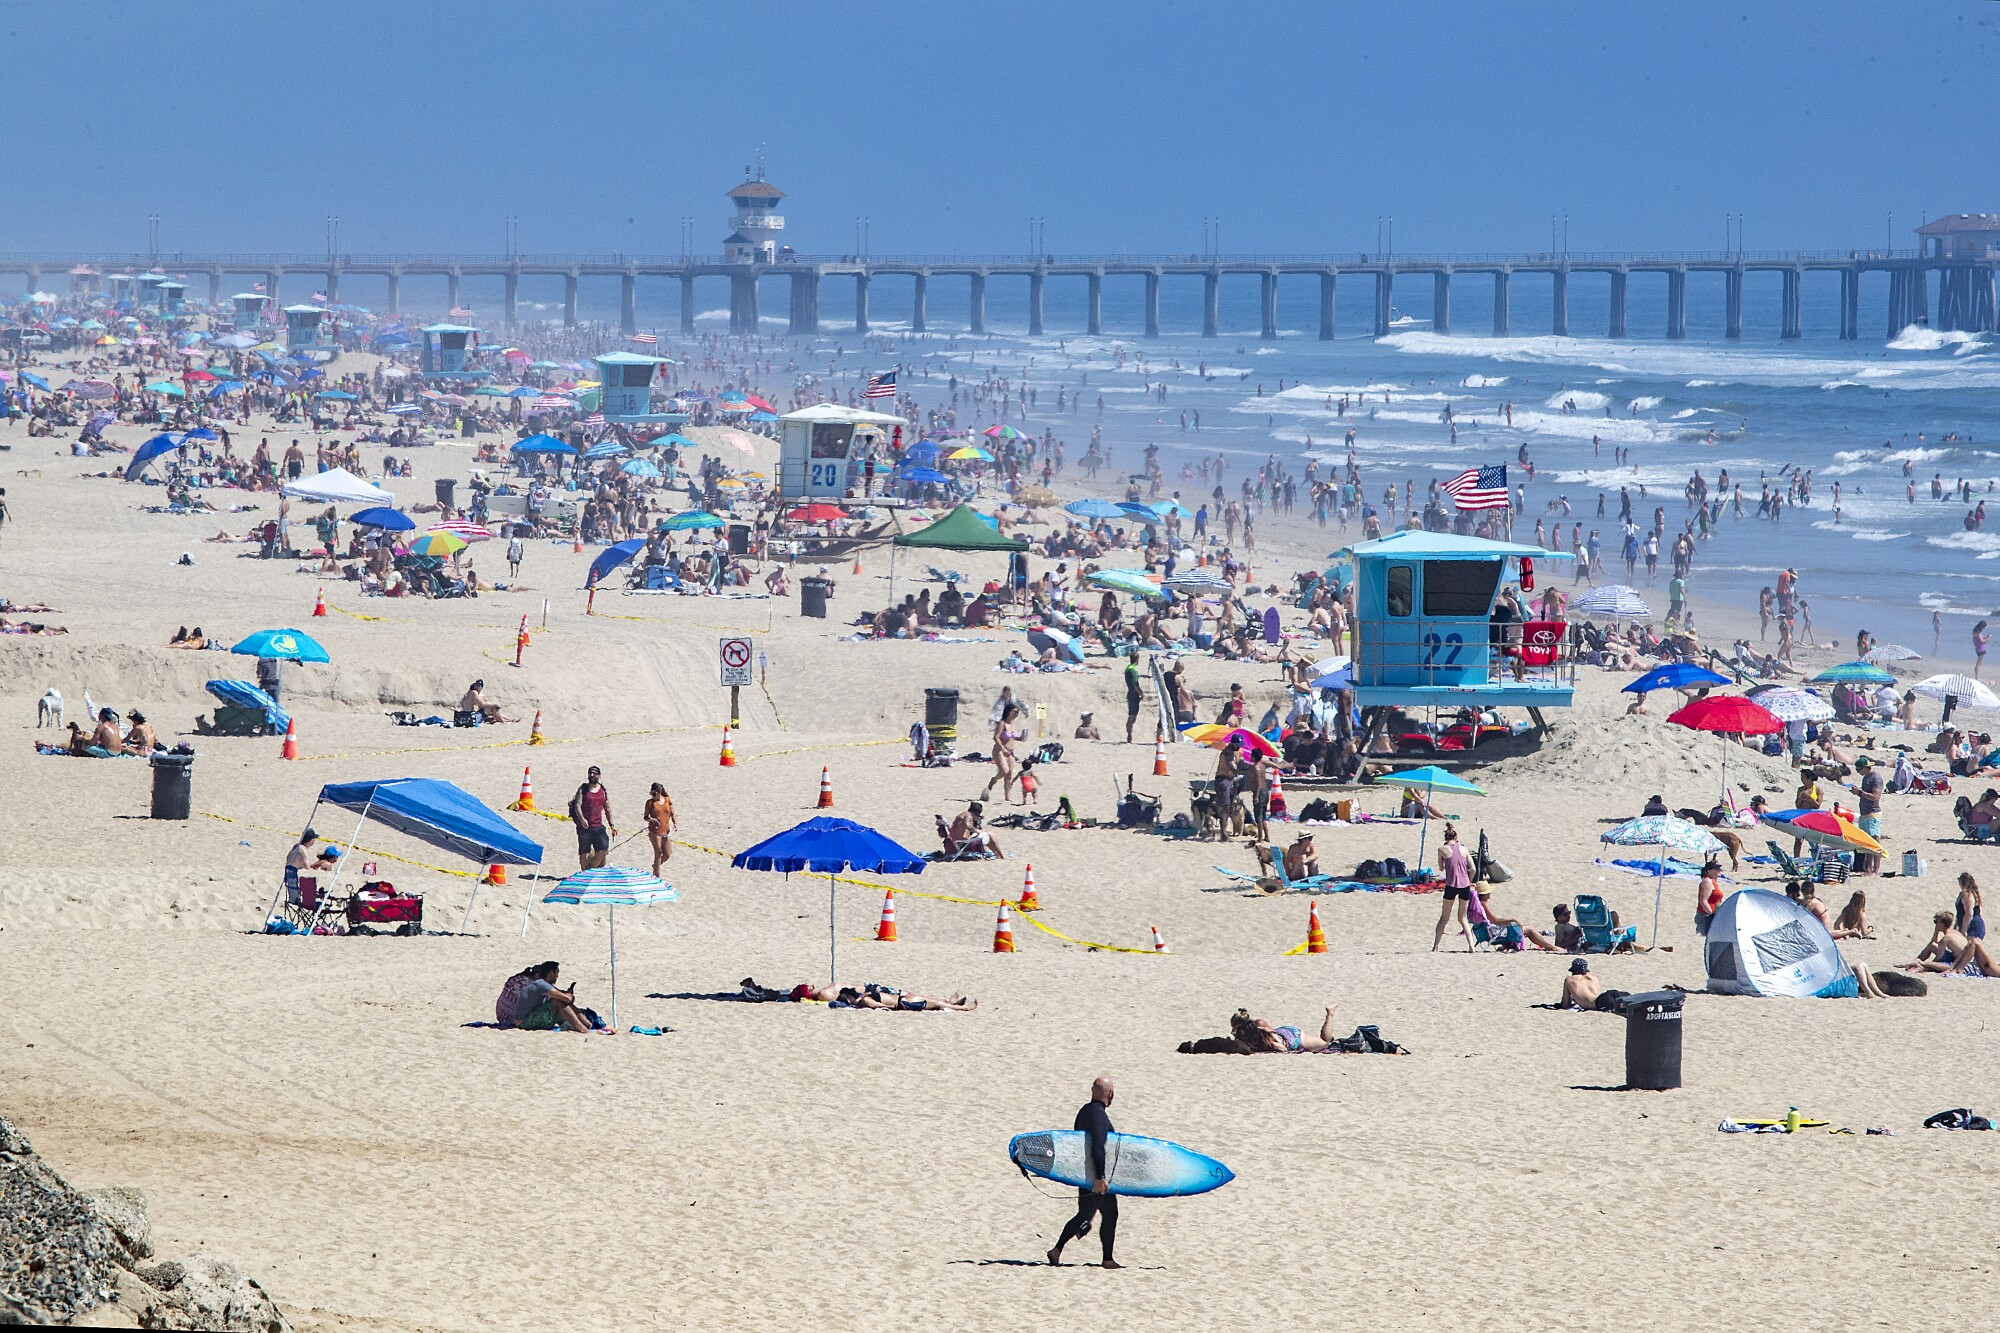 Thousands of beachgoers enjoyed a warm, sunny day at Huntington Beach despite state-mandated stay-at-home orders.